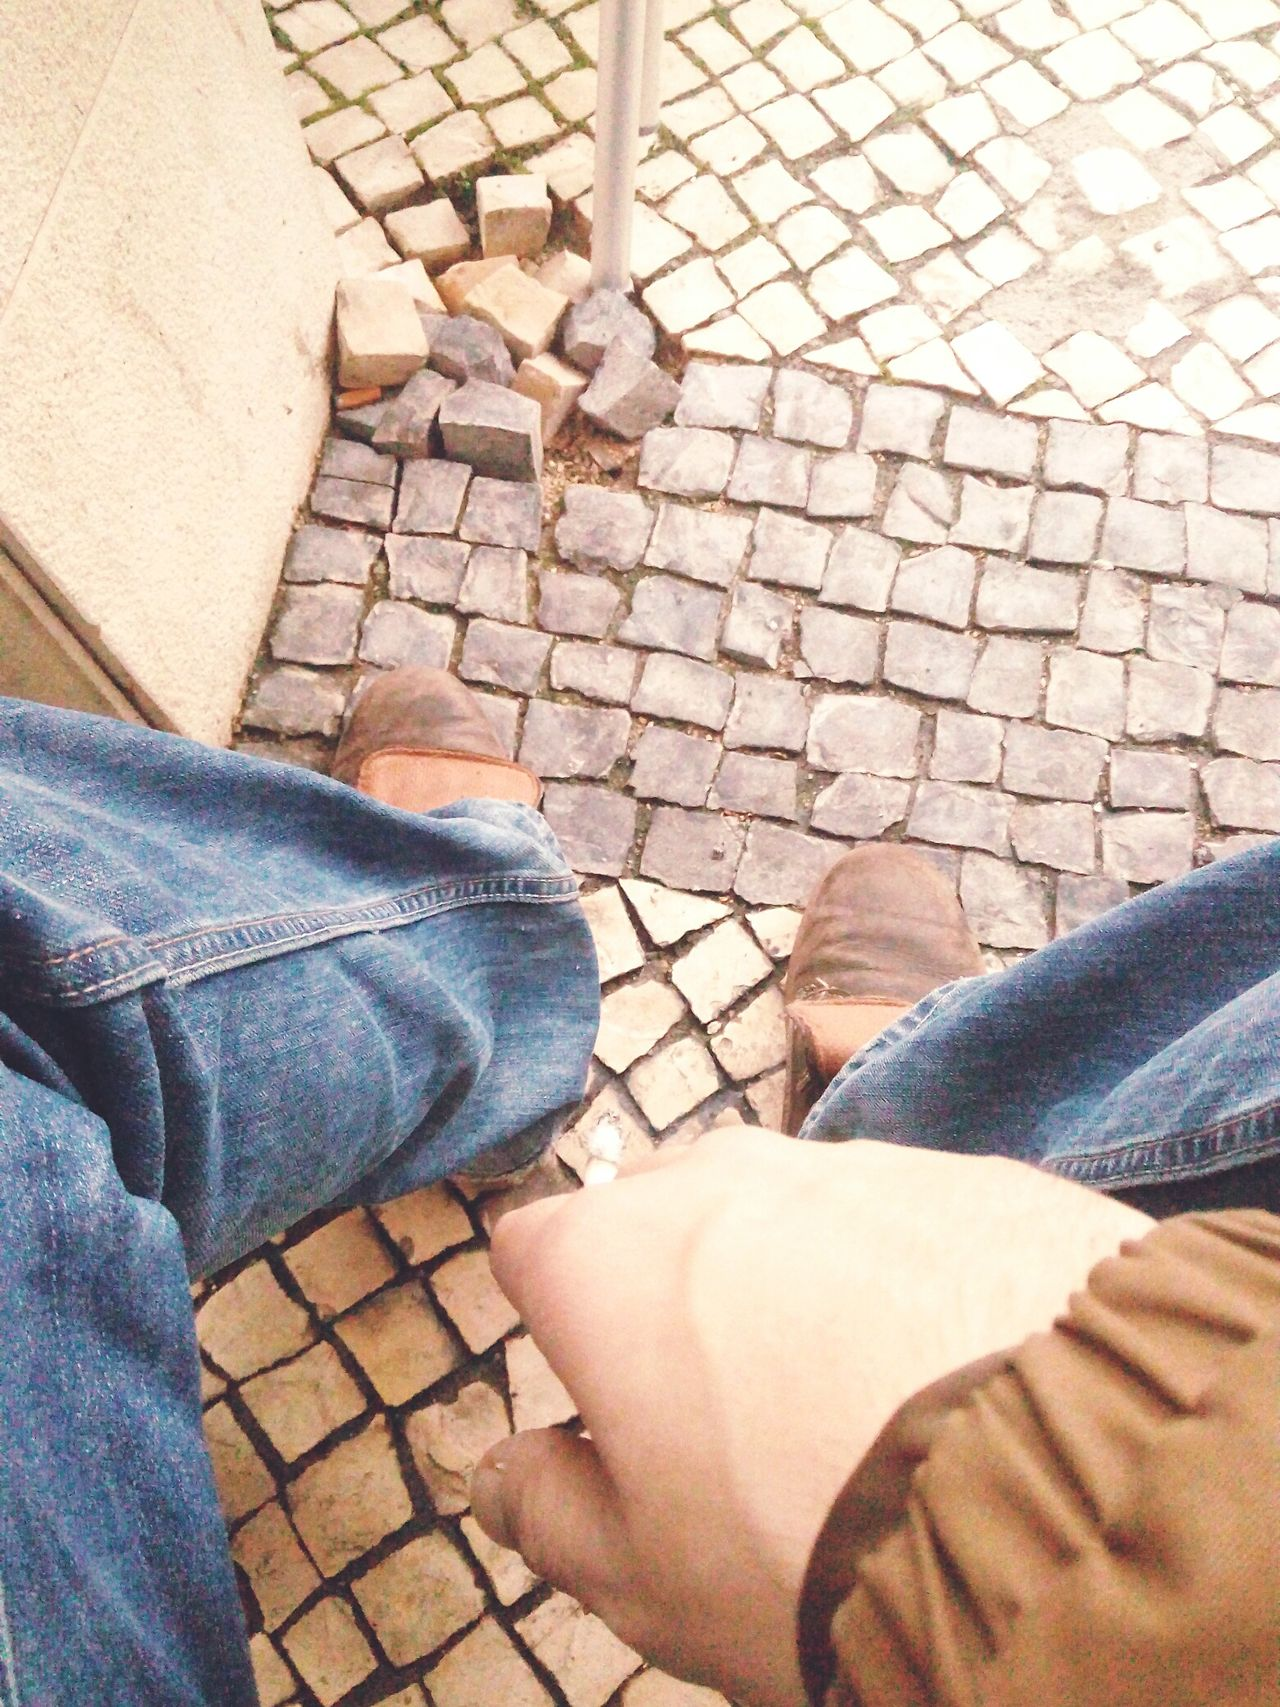 Cigarette Time Addiction Low Section Human Leg Real People Jeans One Person Lifestyles Sunlight Personal Perspective Standing Shoe Day Women Human Body Part Outdoors Close-up Adult People